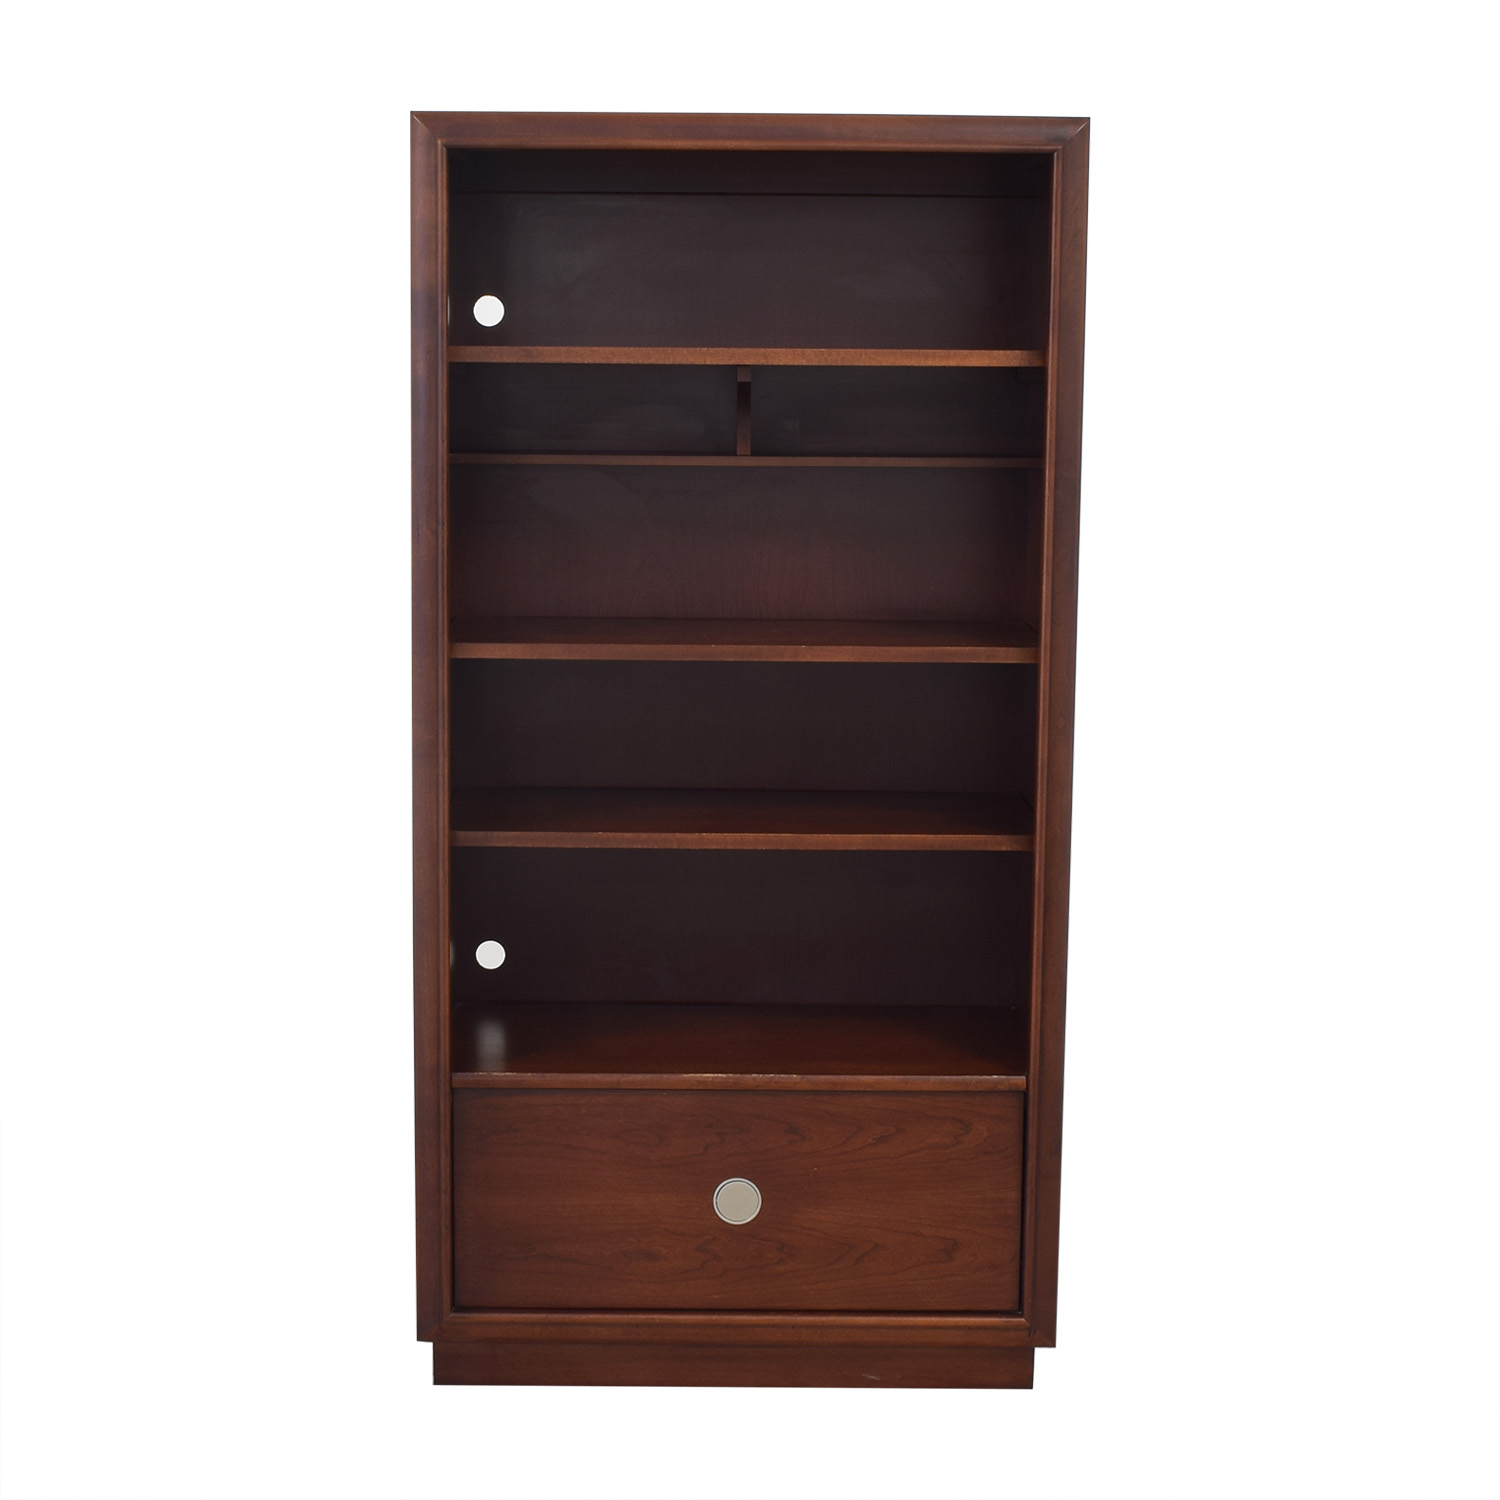 shop Stanley Furniture Bookshelf with Drawer Stanley Furniture Bookcases & Shelving